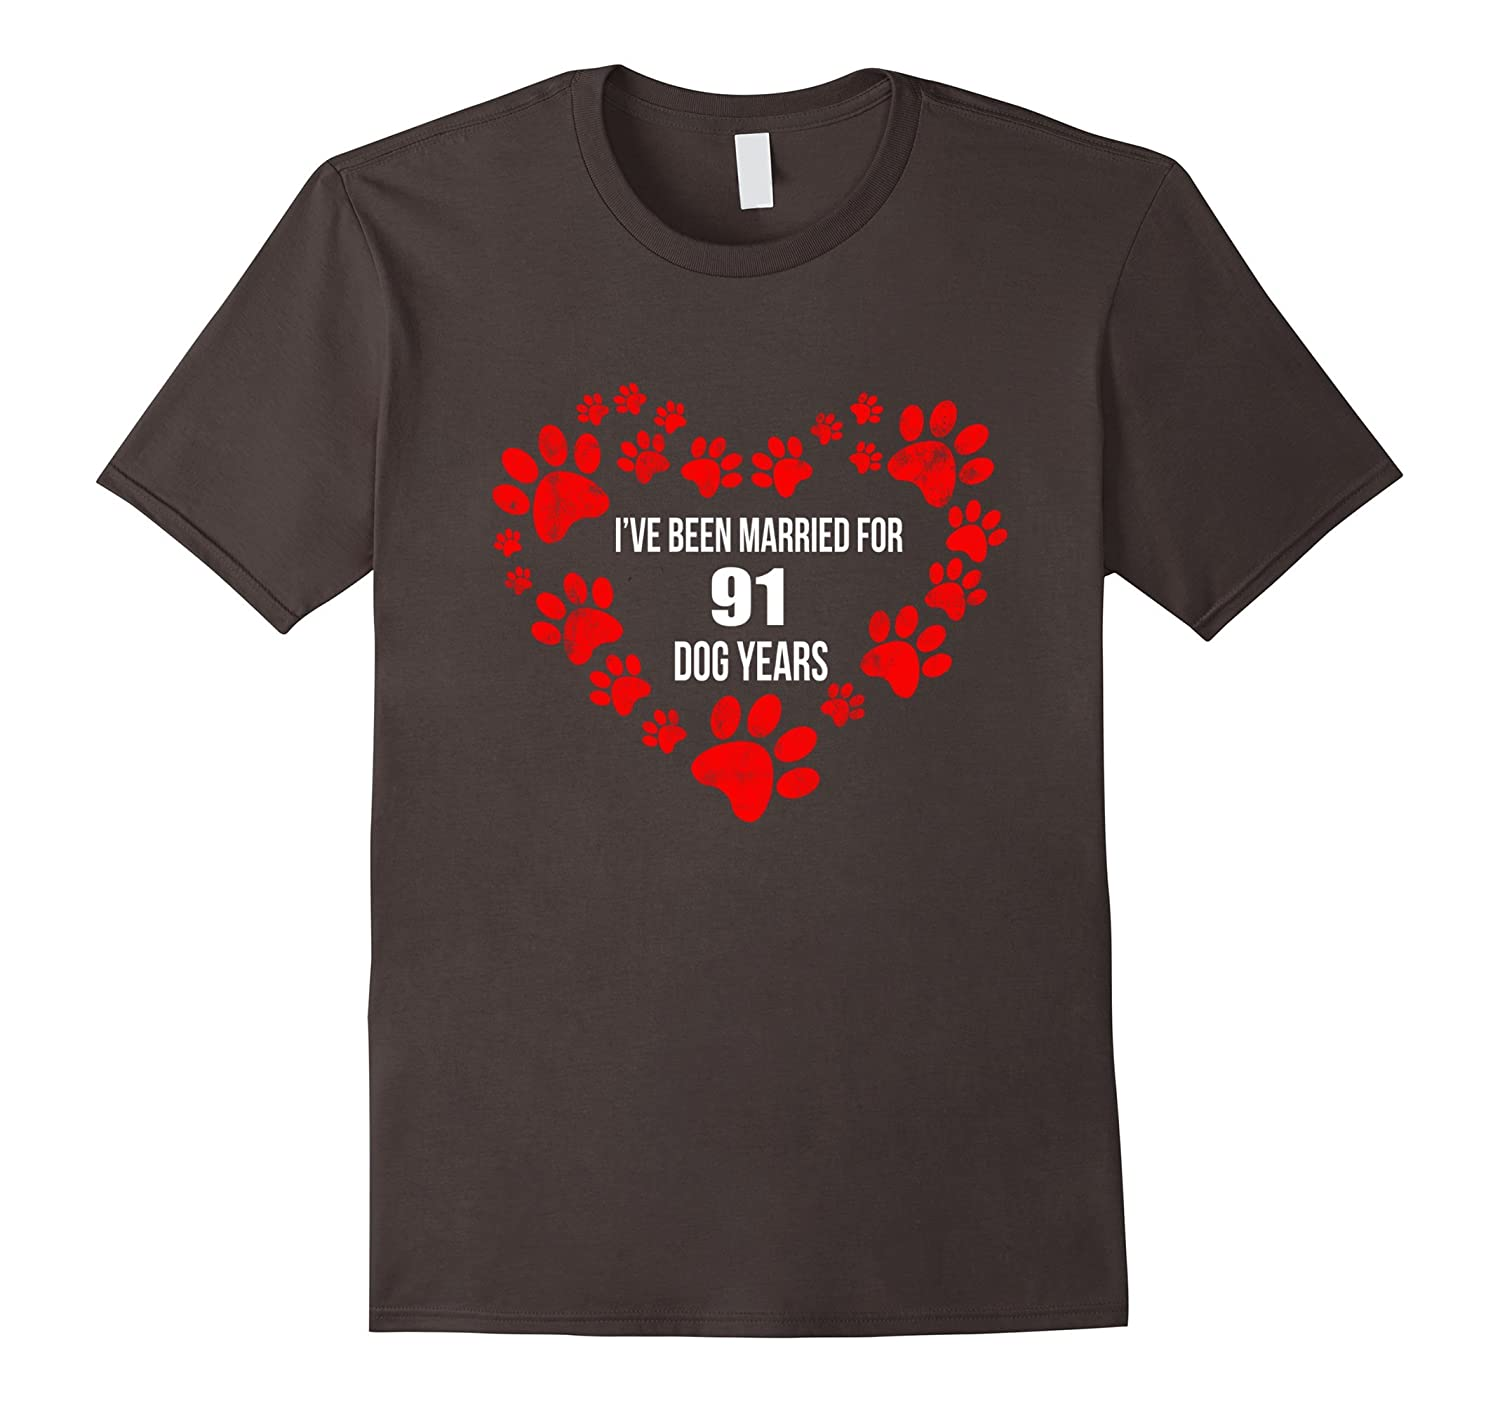 13th Wedding Anniversary Gift Ideas For Her: 13th Wedding Anniversary T-Shirt 91 Dog Years Gift